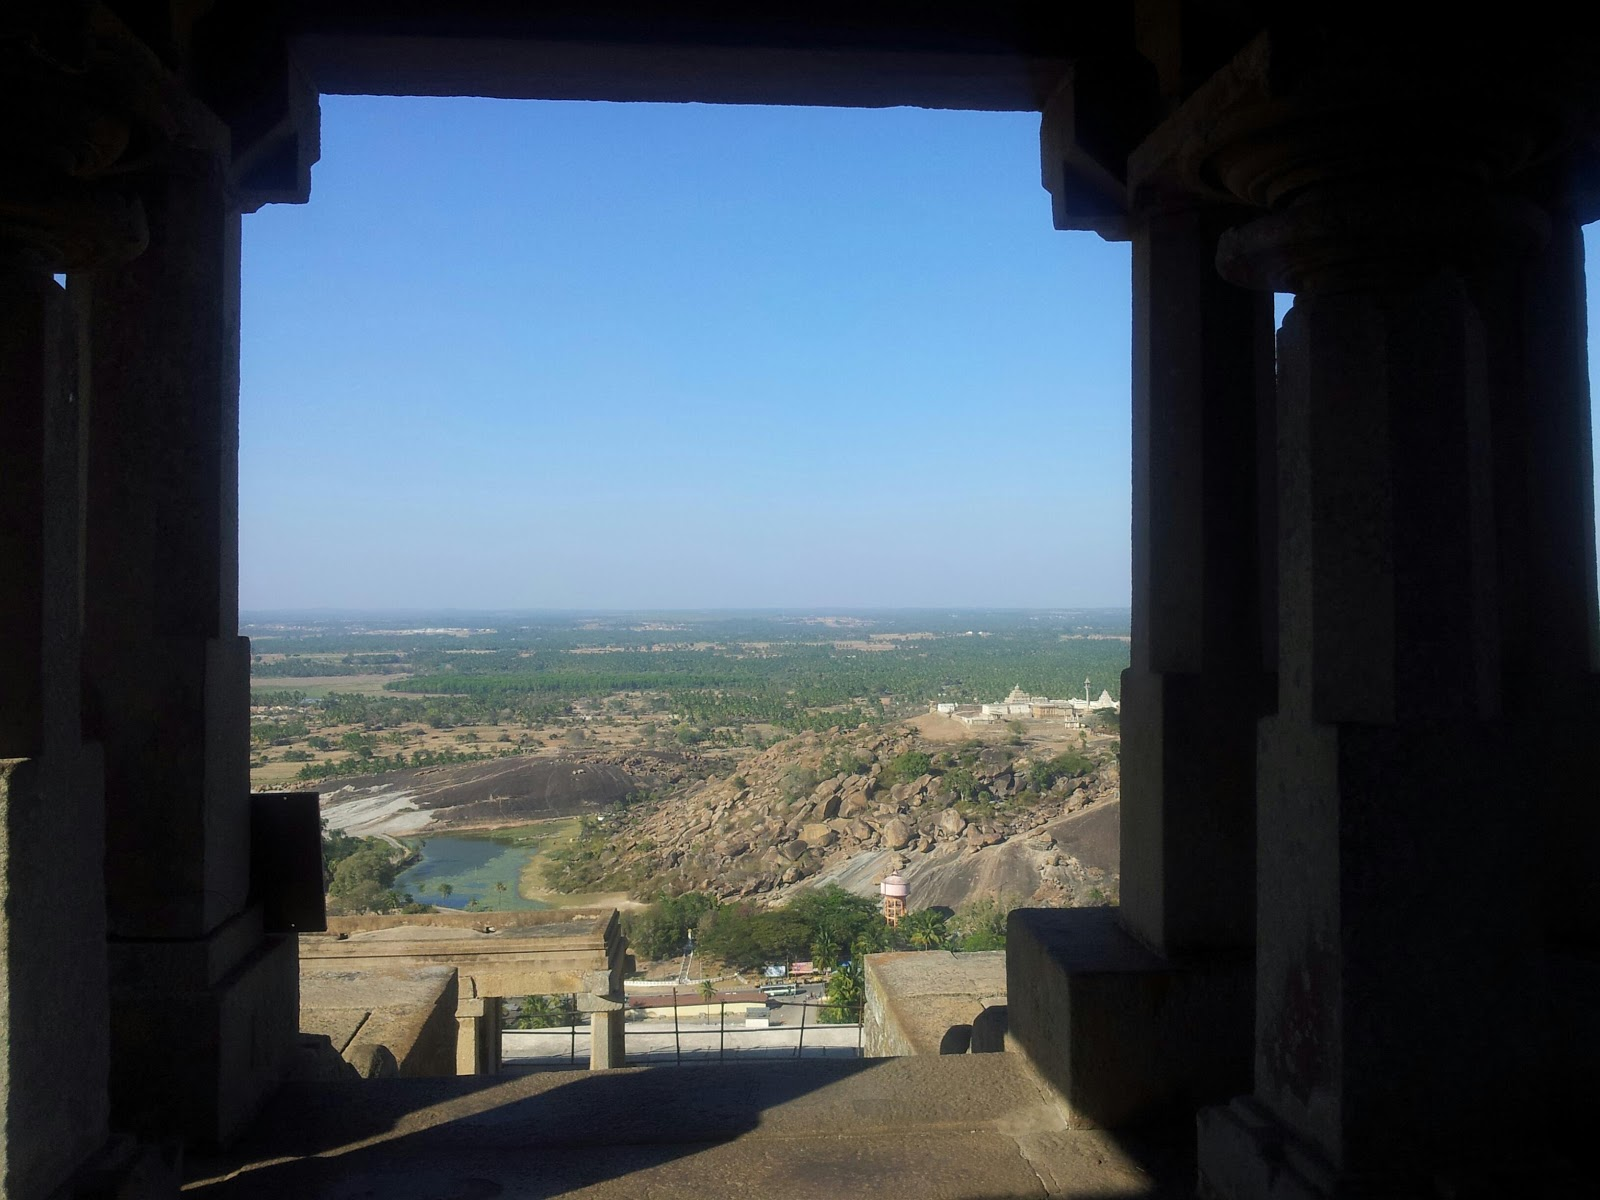 dating places around bangalore List of tourist attractions in bangalore makalidurga - is a great place near kote jalakantheshwara temple the oldest temple in bangalore dating back to the.